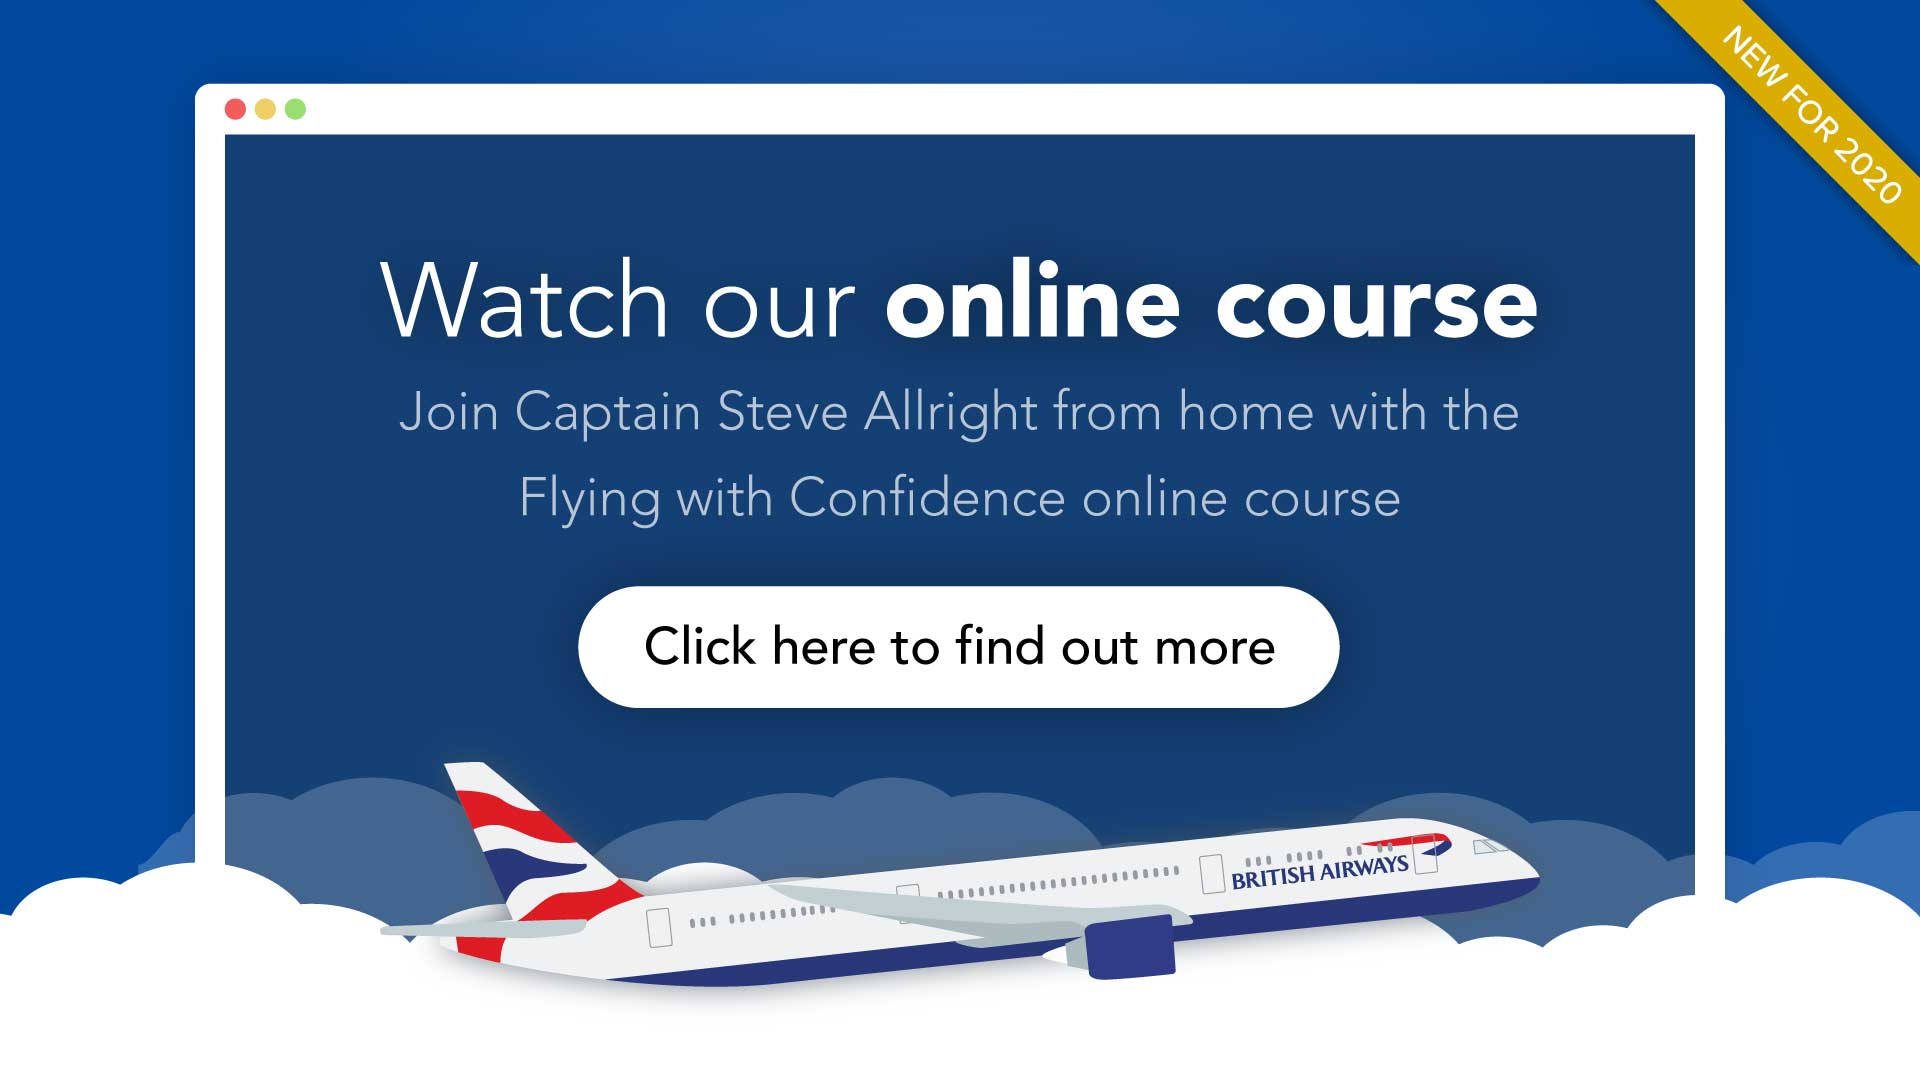 Online course - fear of flying courses from Flying With Confidence